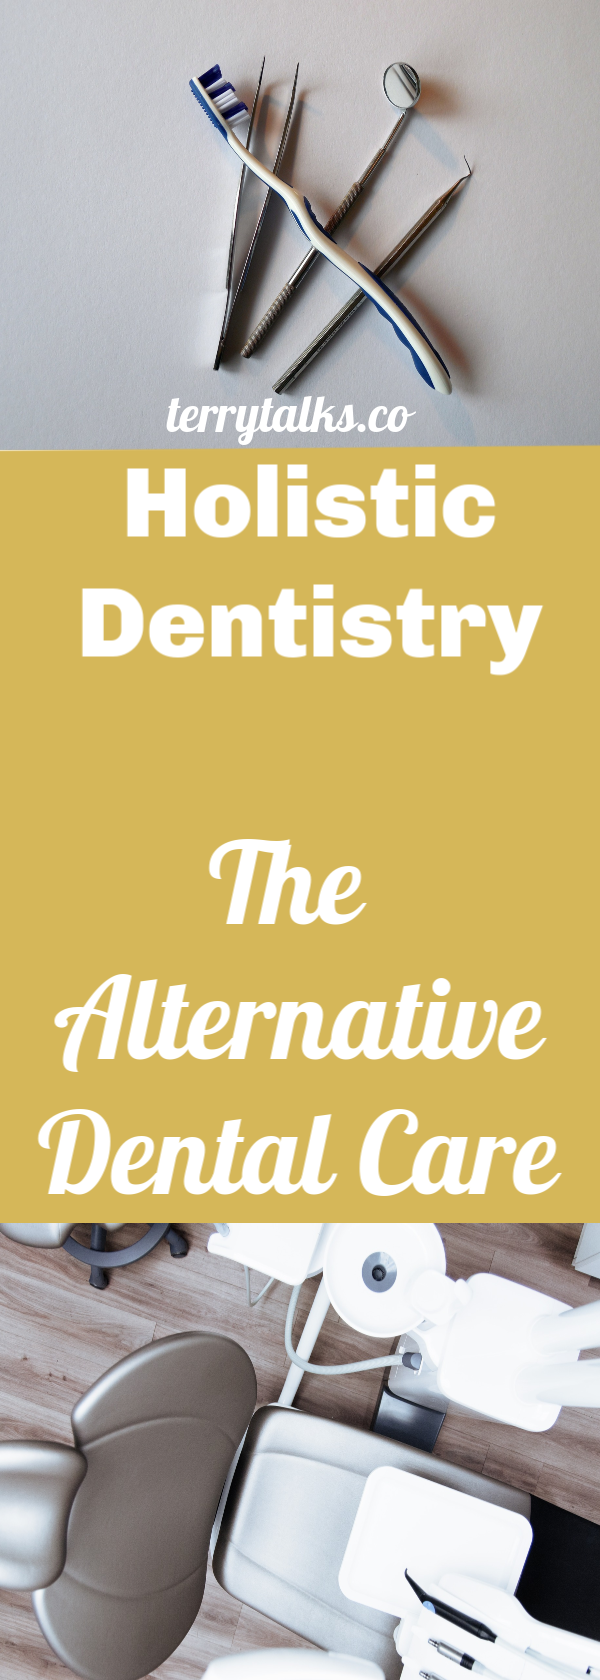 Holistic Dentistry, The Alternative Dental Care